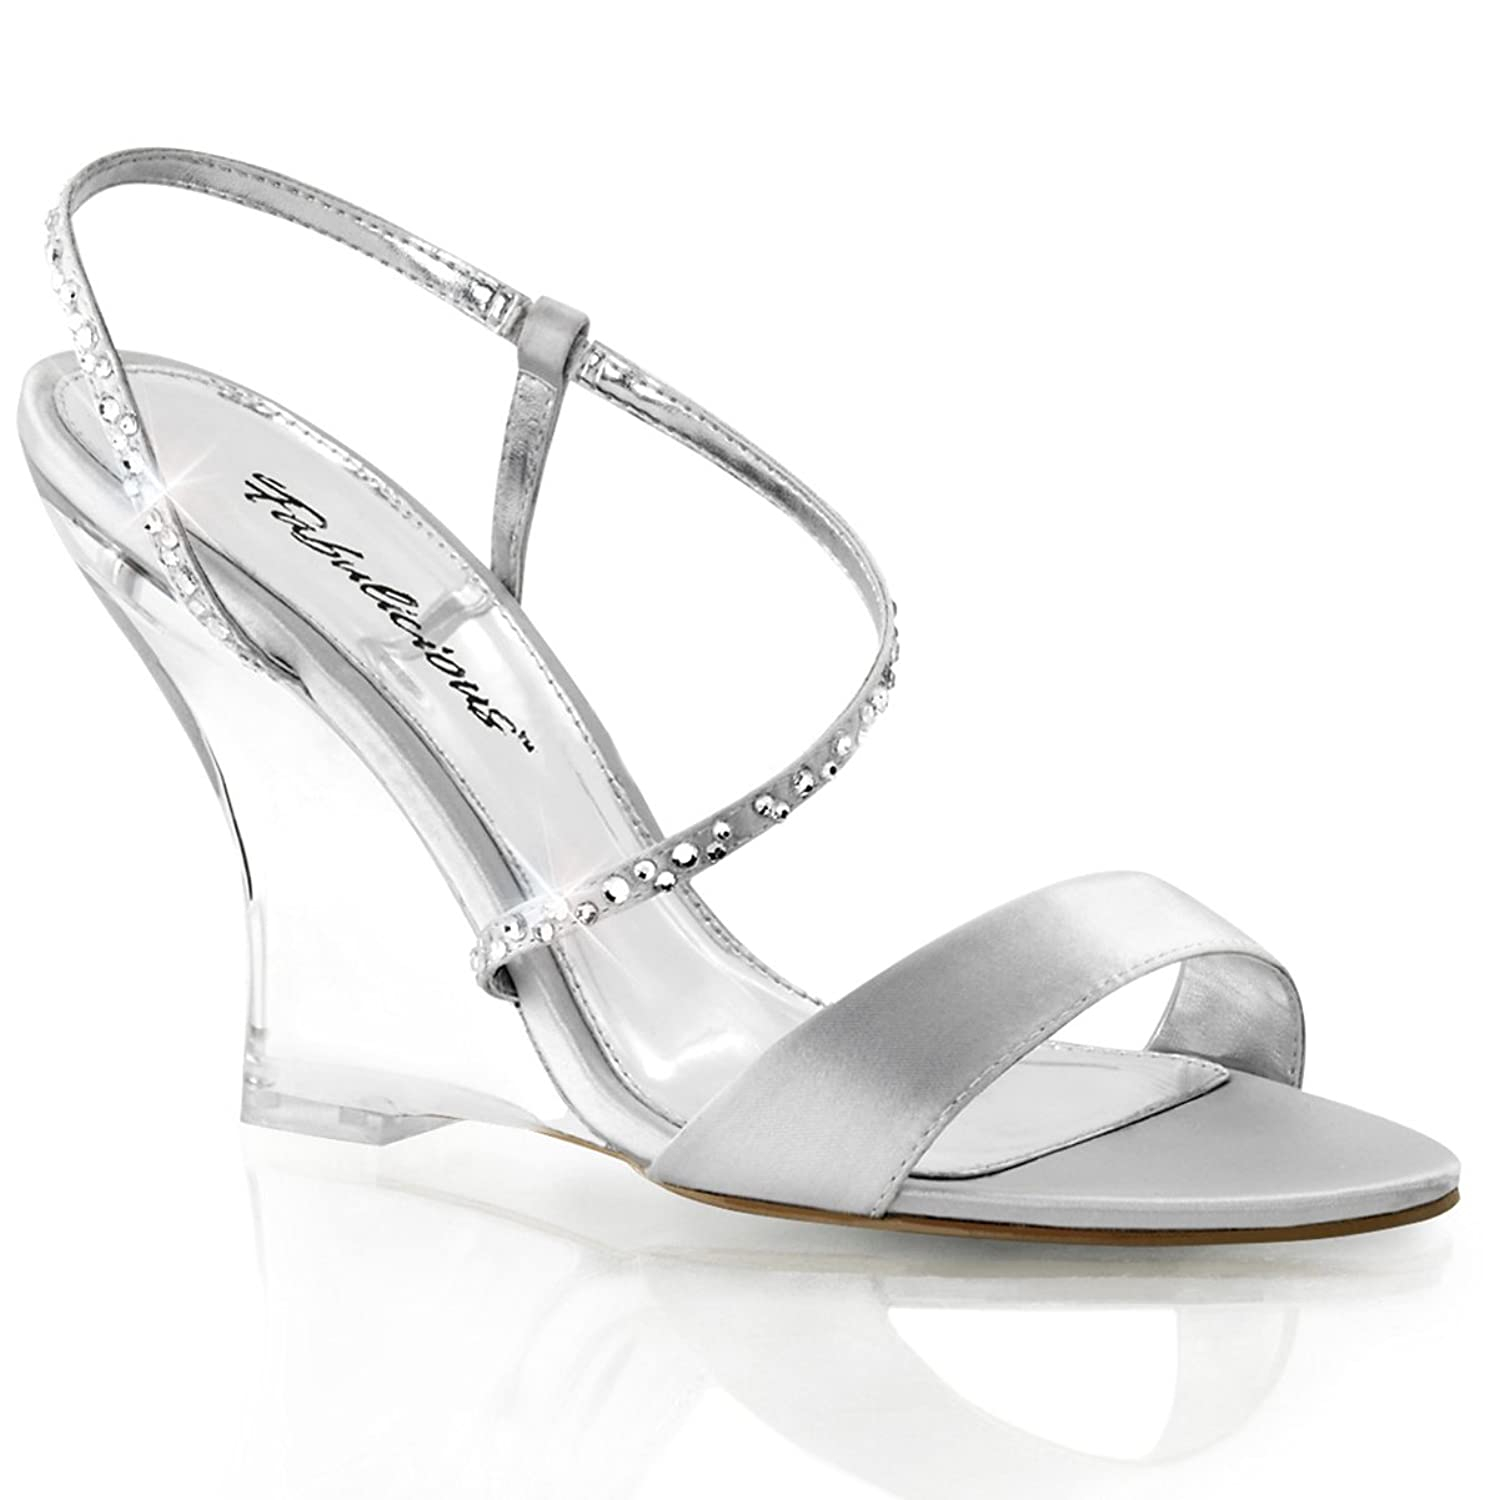 Lovely Amazon.com | Womens Silver Satin And Rhinestone Wedges Sandals Shoes 4u0027u0027  Clear Wedge Heels | Heeled Sandals